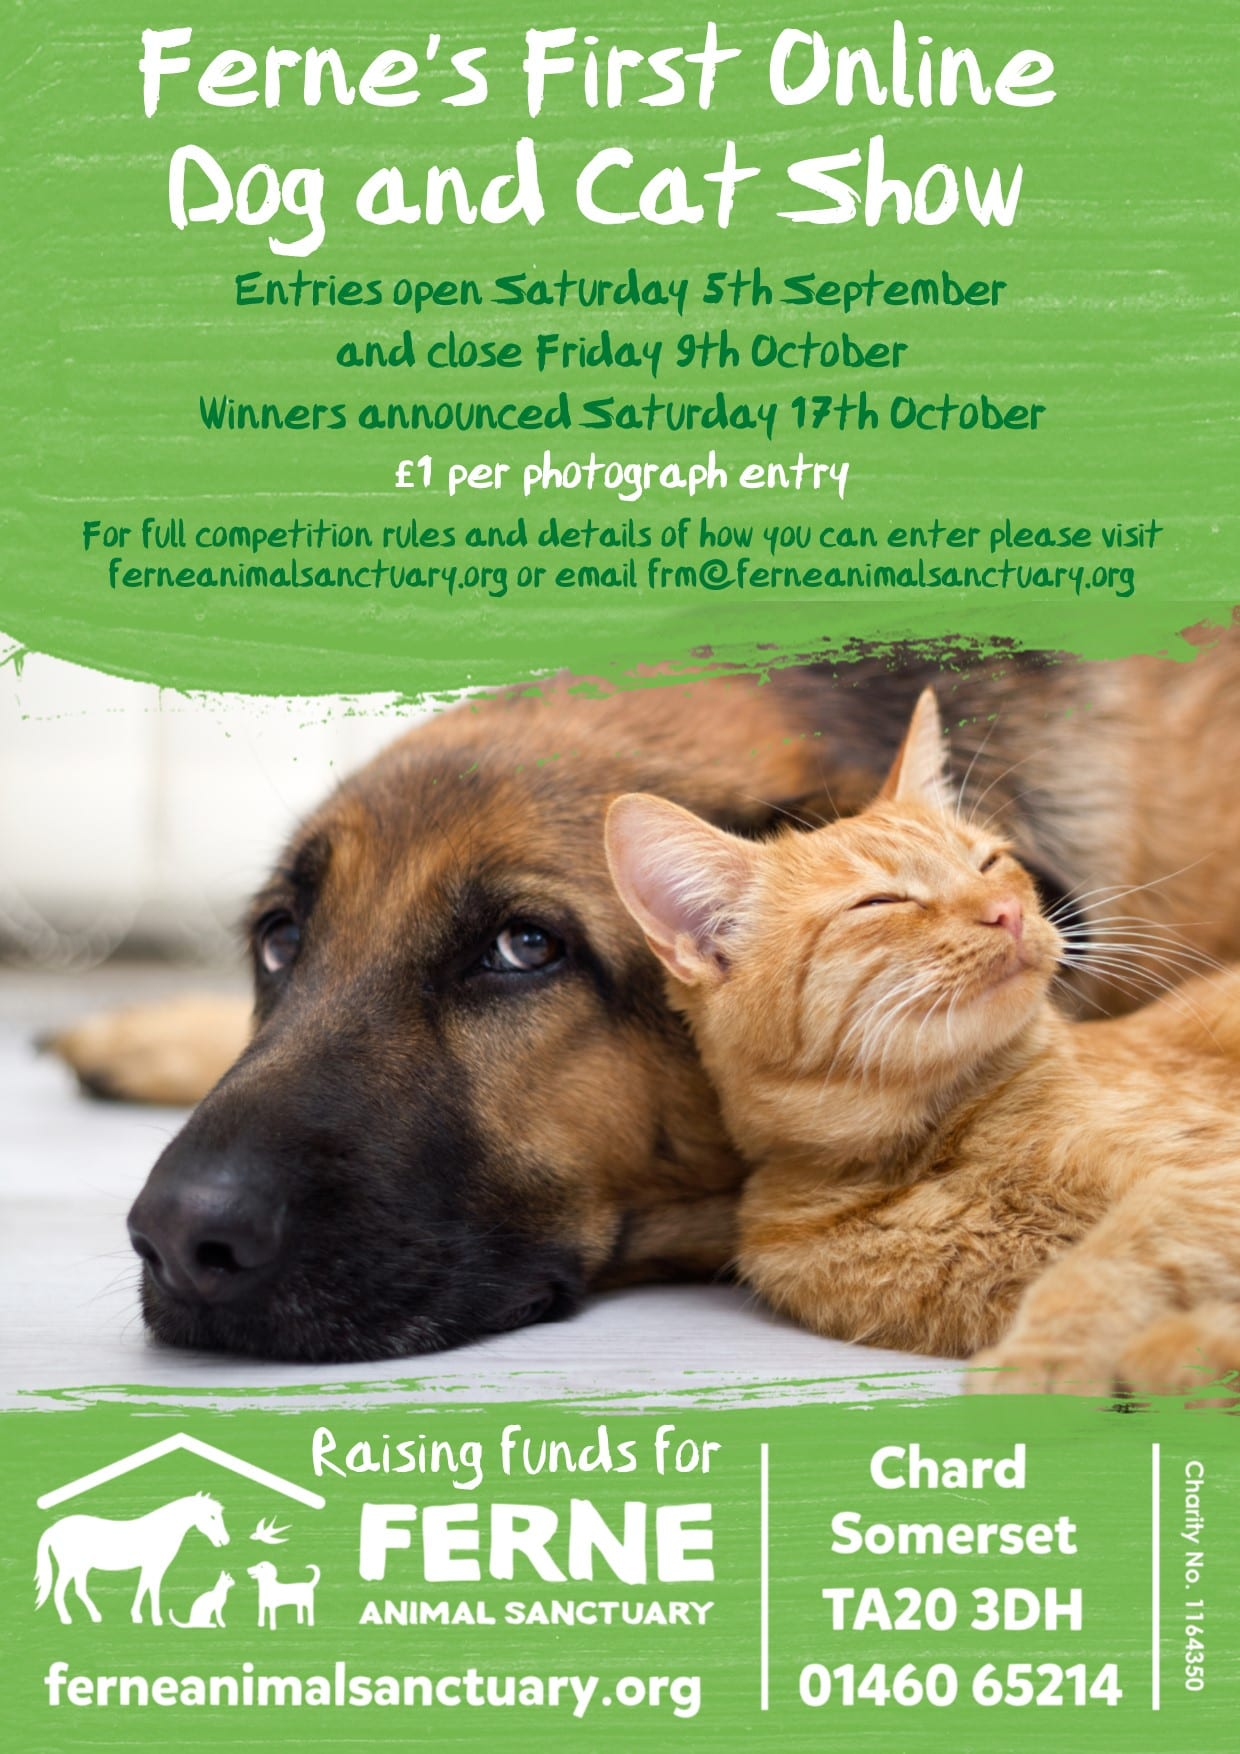 Ferne's First Online Dog and Cat Show